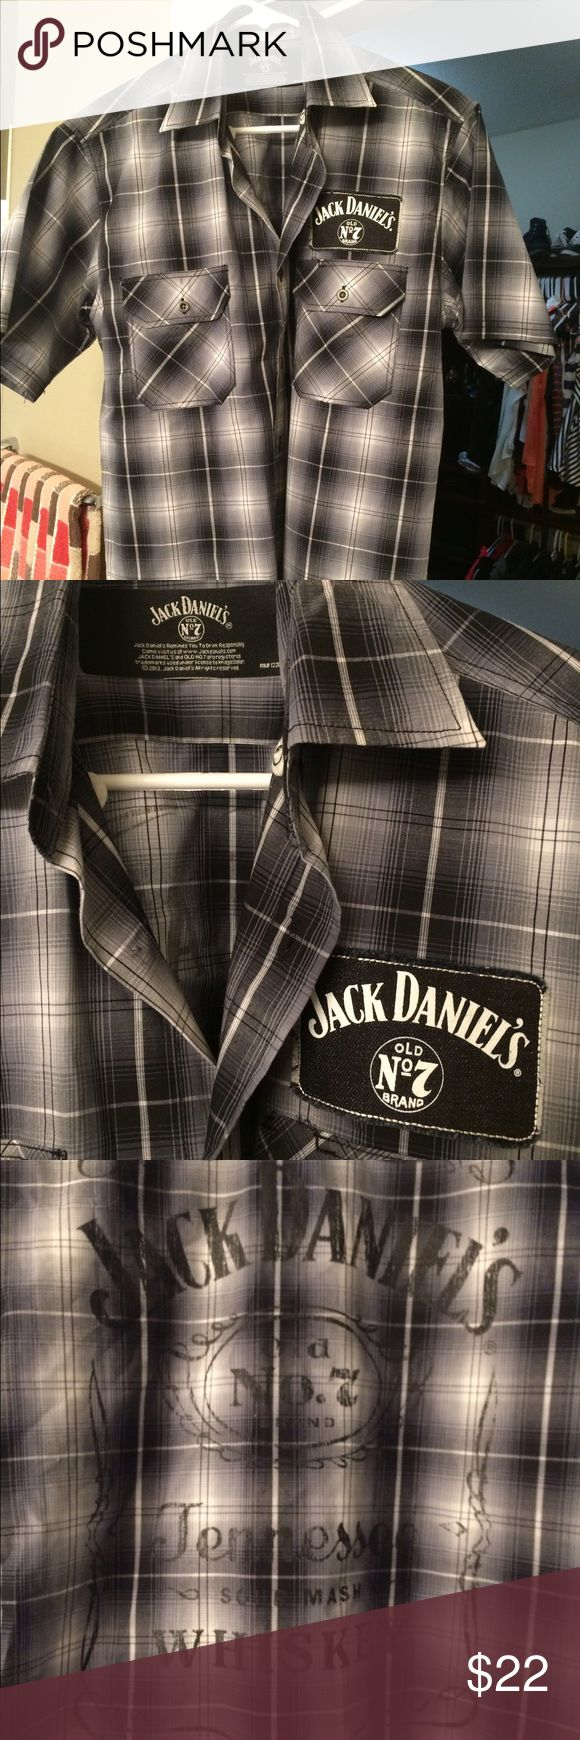 "Men's button up Jack Daniels plaid shirt Men's Large grey/blk/white official Jack Daniels button up shirt sleeve shirt. Never worn, perfect condition. Jack logo printed on back also. Front patch ""Jack Daniels"" on front Jack Daniels Tops Button Down Shirts"